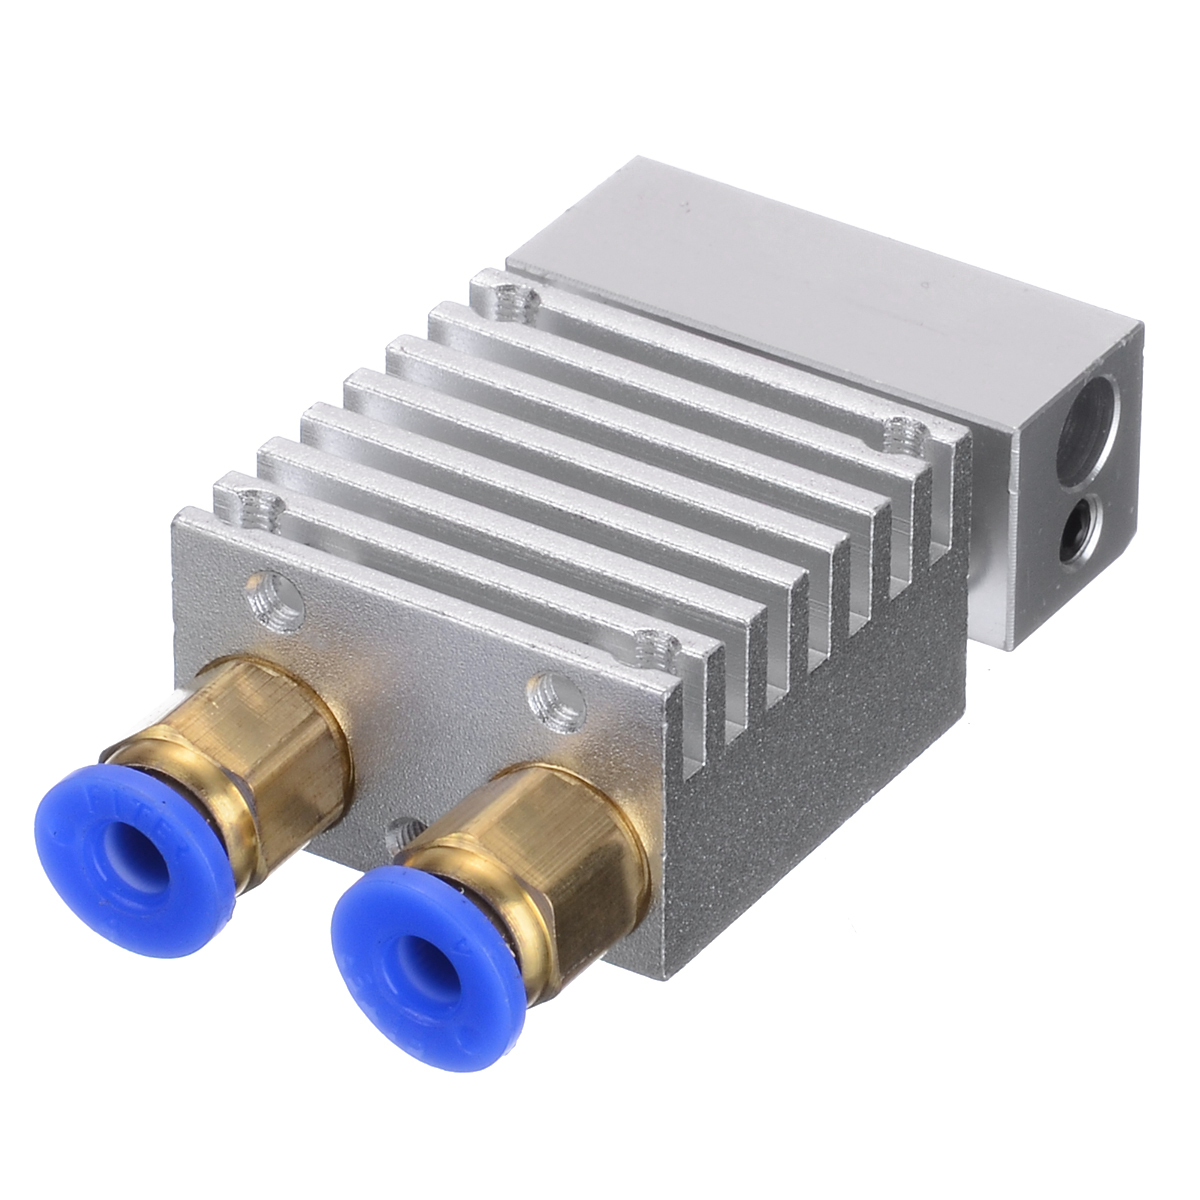 1pc Professional 3D Printer Parts Hotend Extruder Hot End V1 0.4mm Dual Head Metal Nozzle For 1.75mm